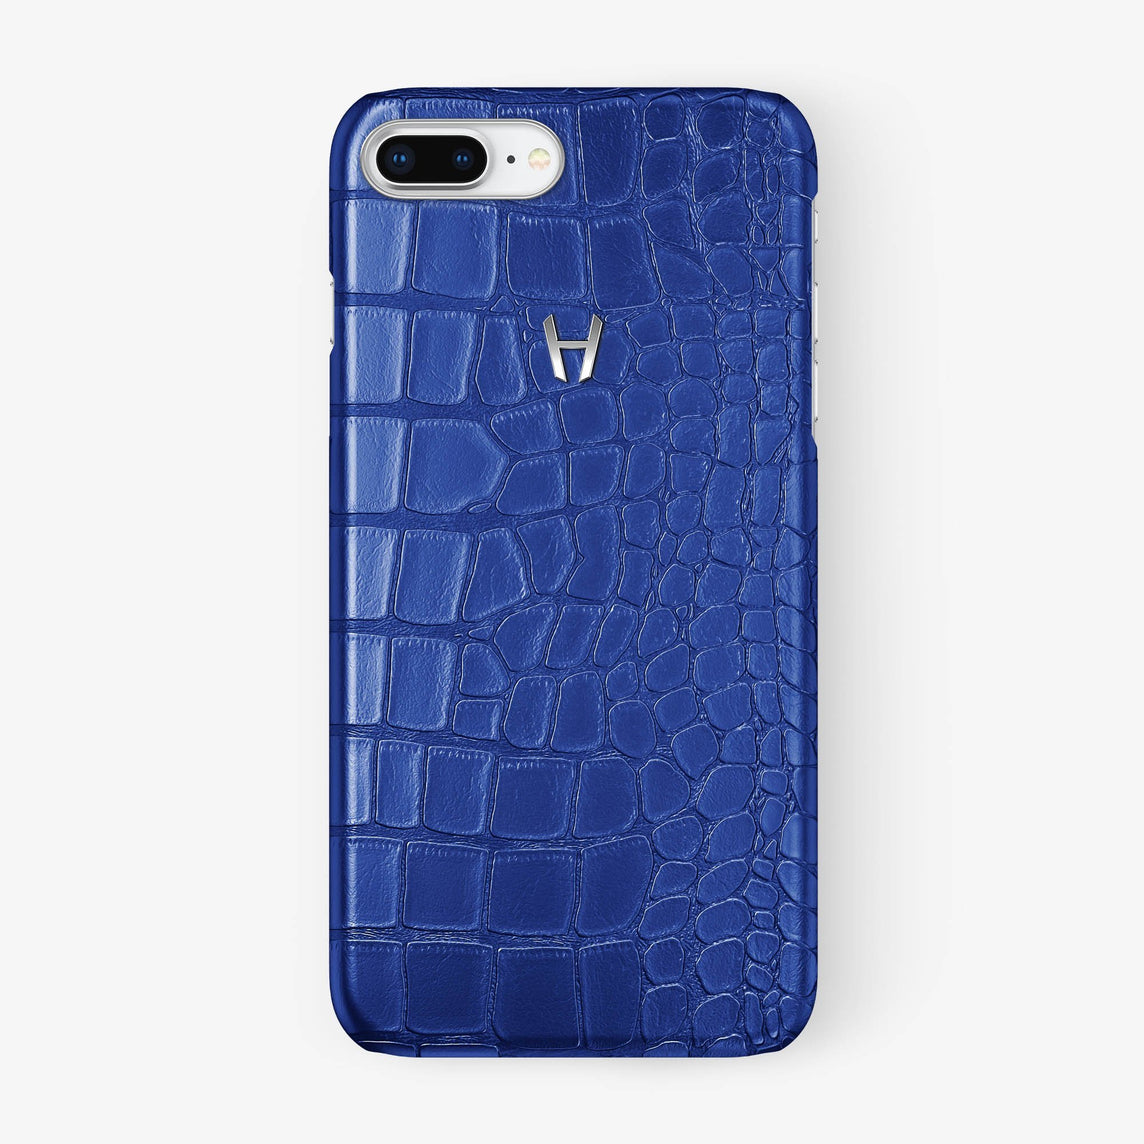 Alligator Case iPhone 7/8 Plus | Peony Blue - Stainless Steel